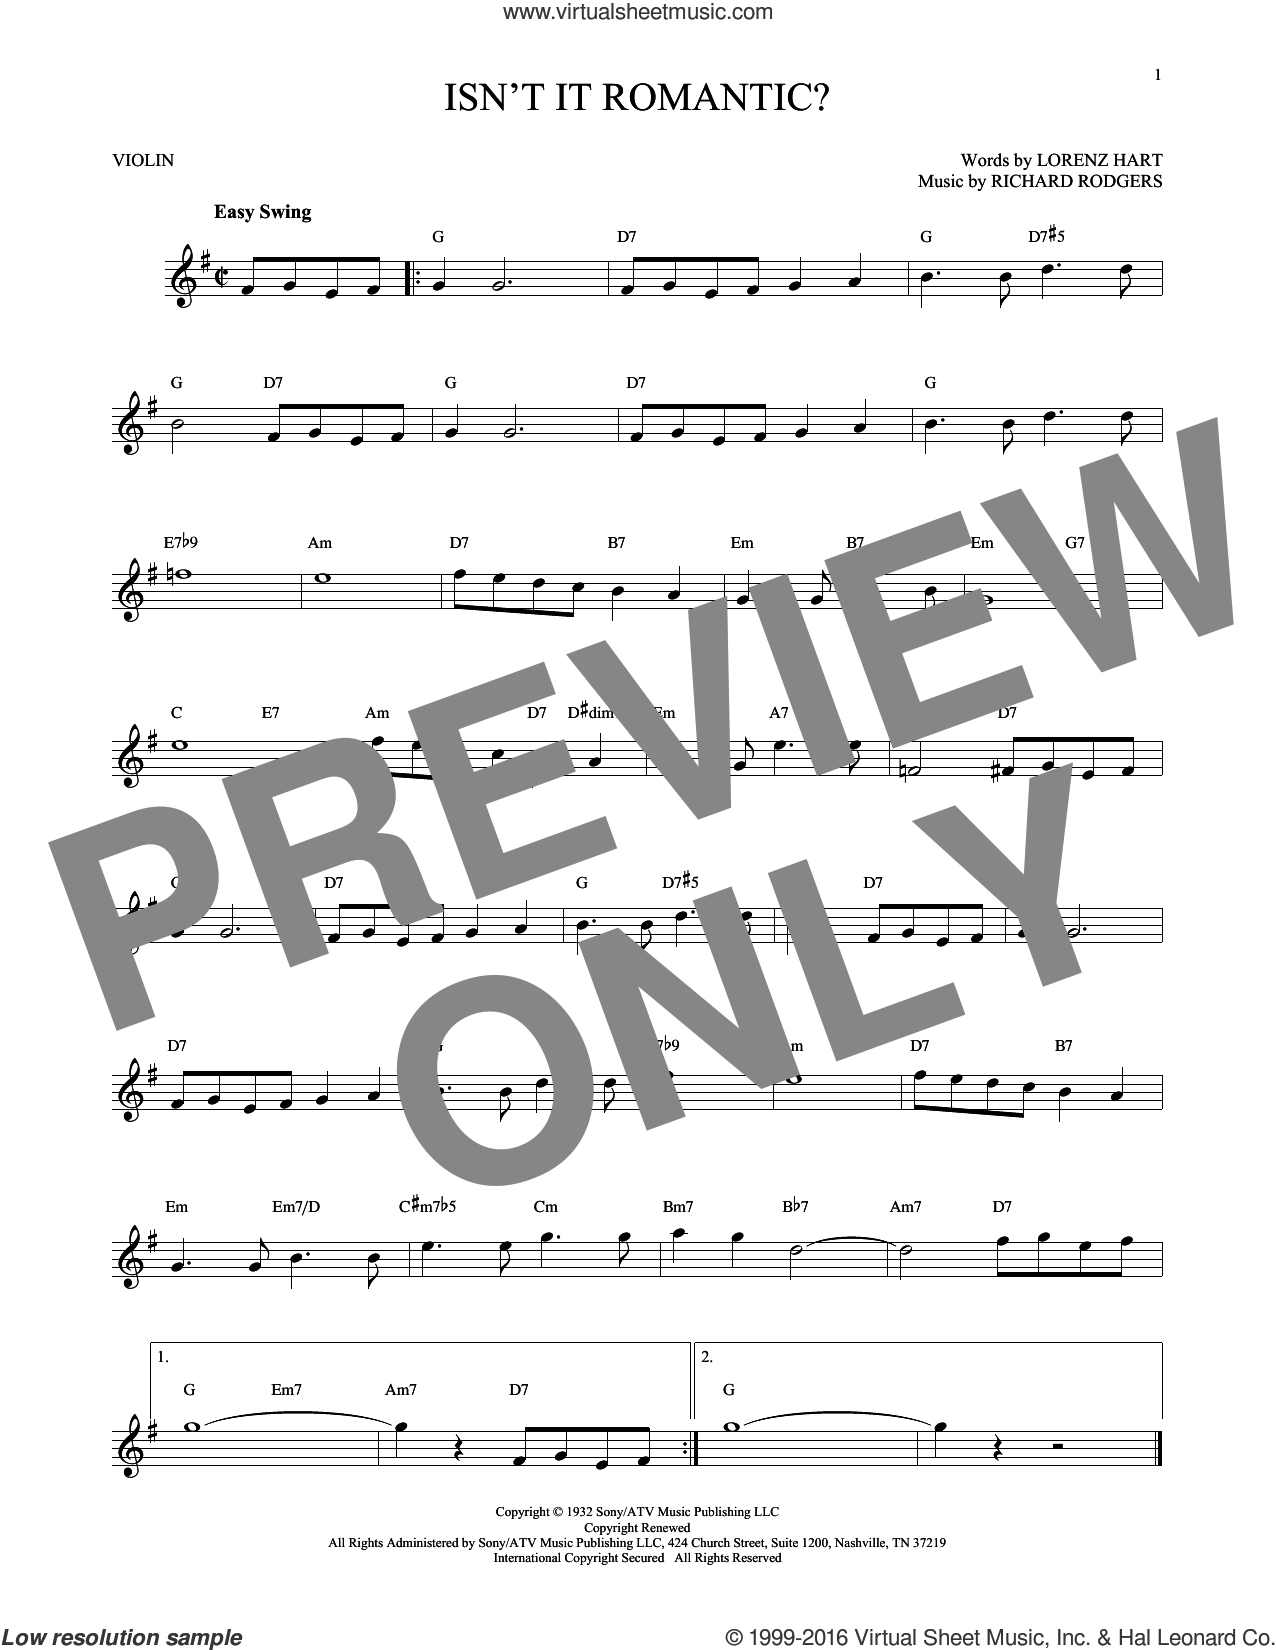 Isn't It Romantic? sheet music for violin solo by Richard Rodgers